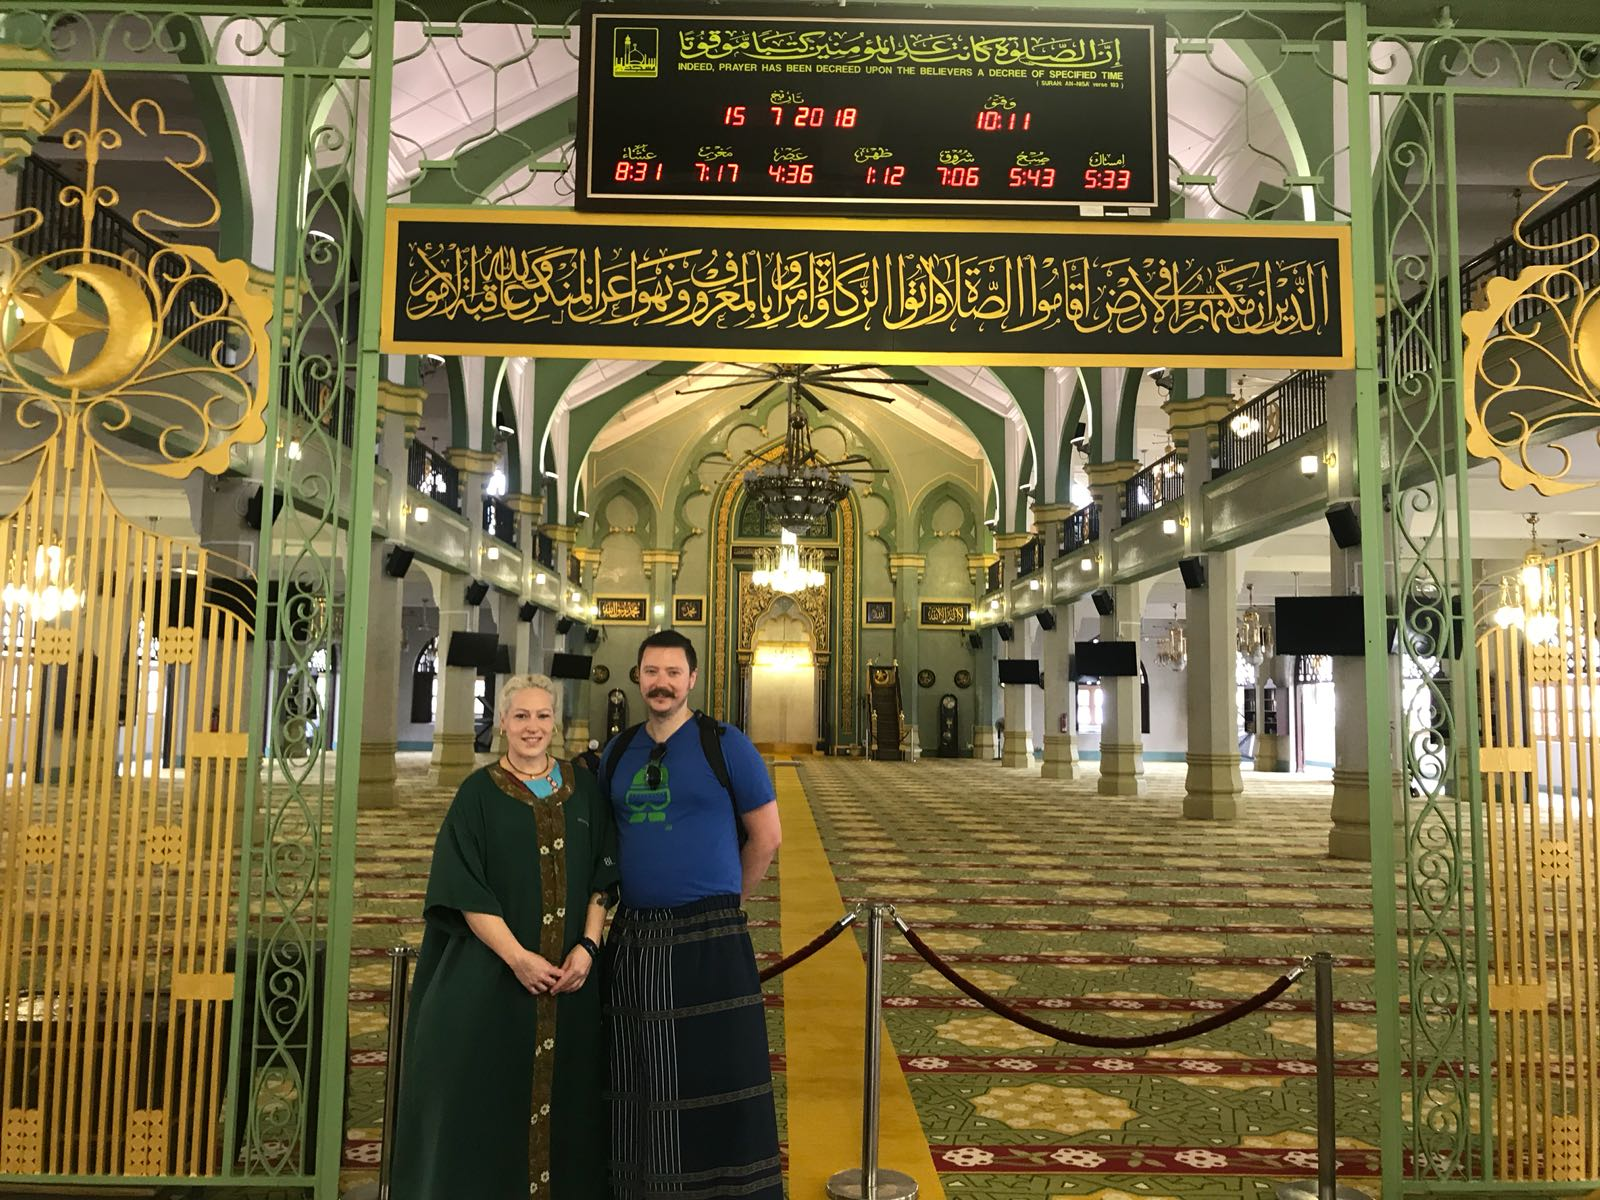 Our guests went inside Sultan Mosque with their singapore tour guide